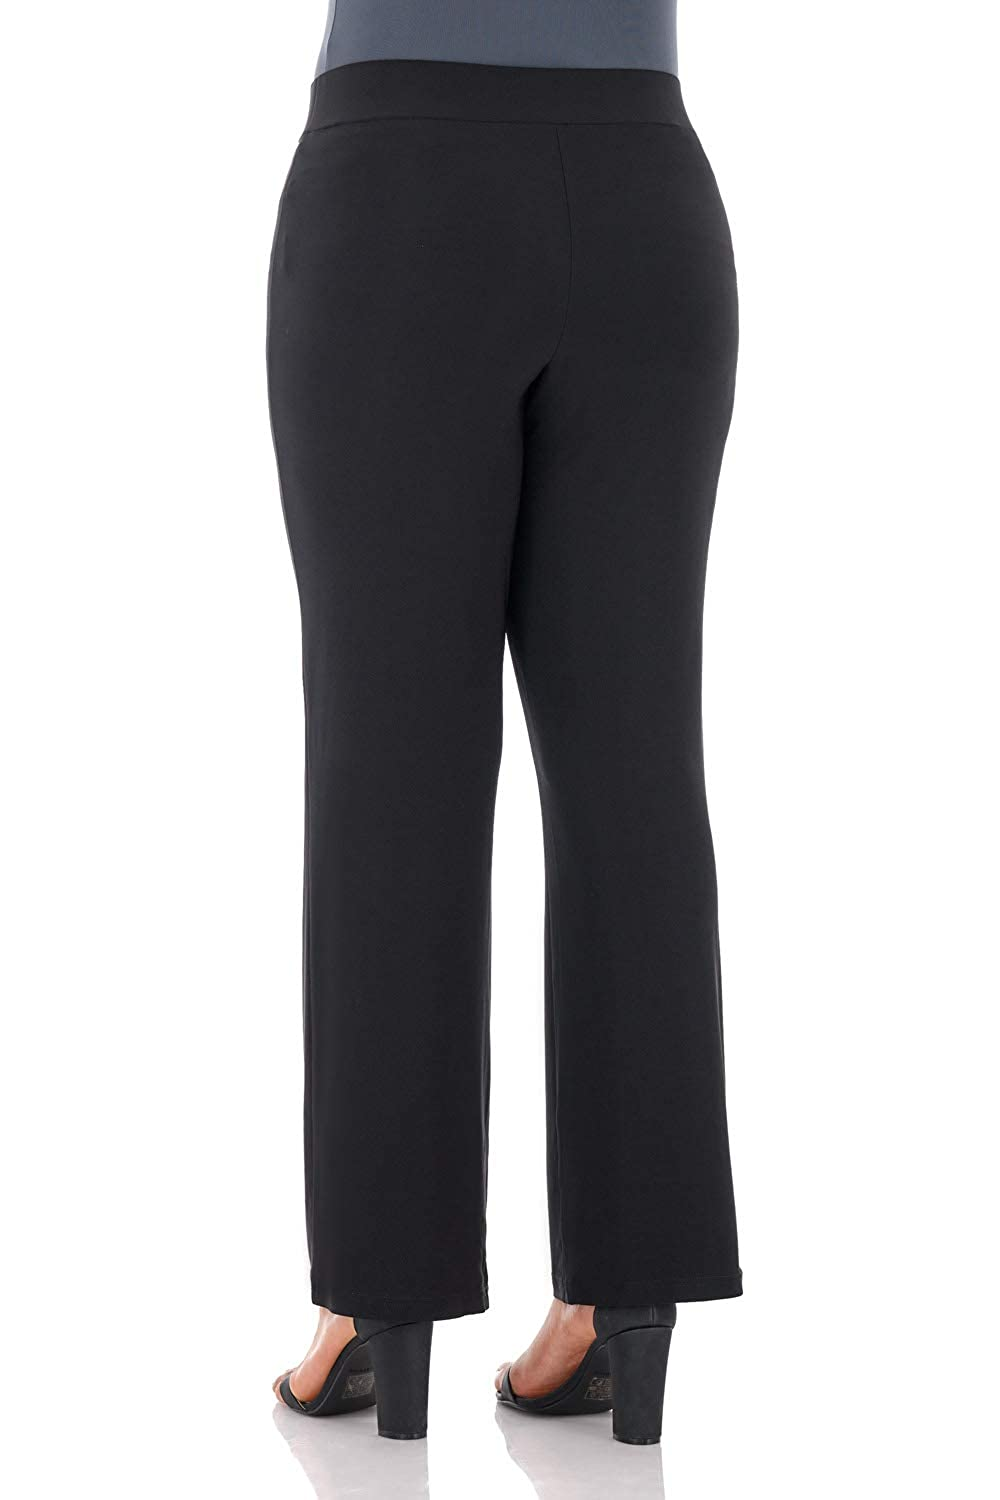 b6248c5997b Rekucci Travel in Style - Curvy Woman Classic Straight Leg Plus Size Pant  at Amazon Women s Clothing store